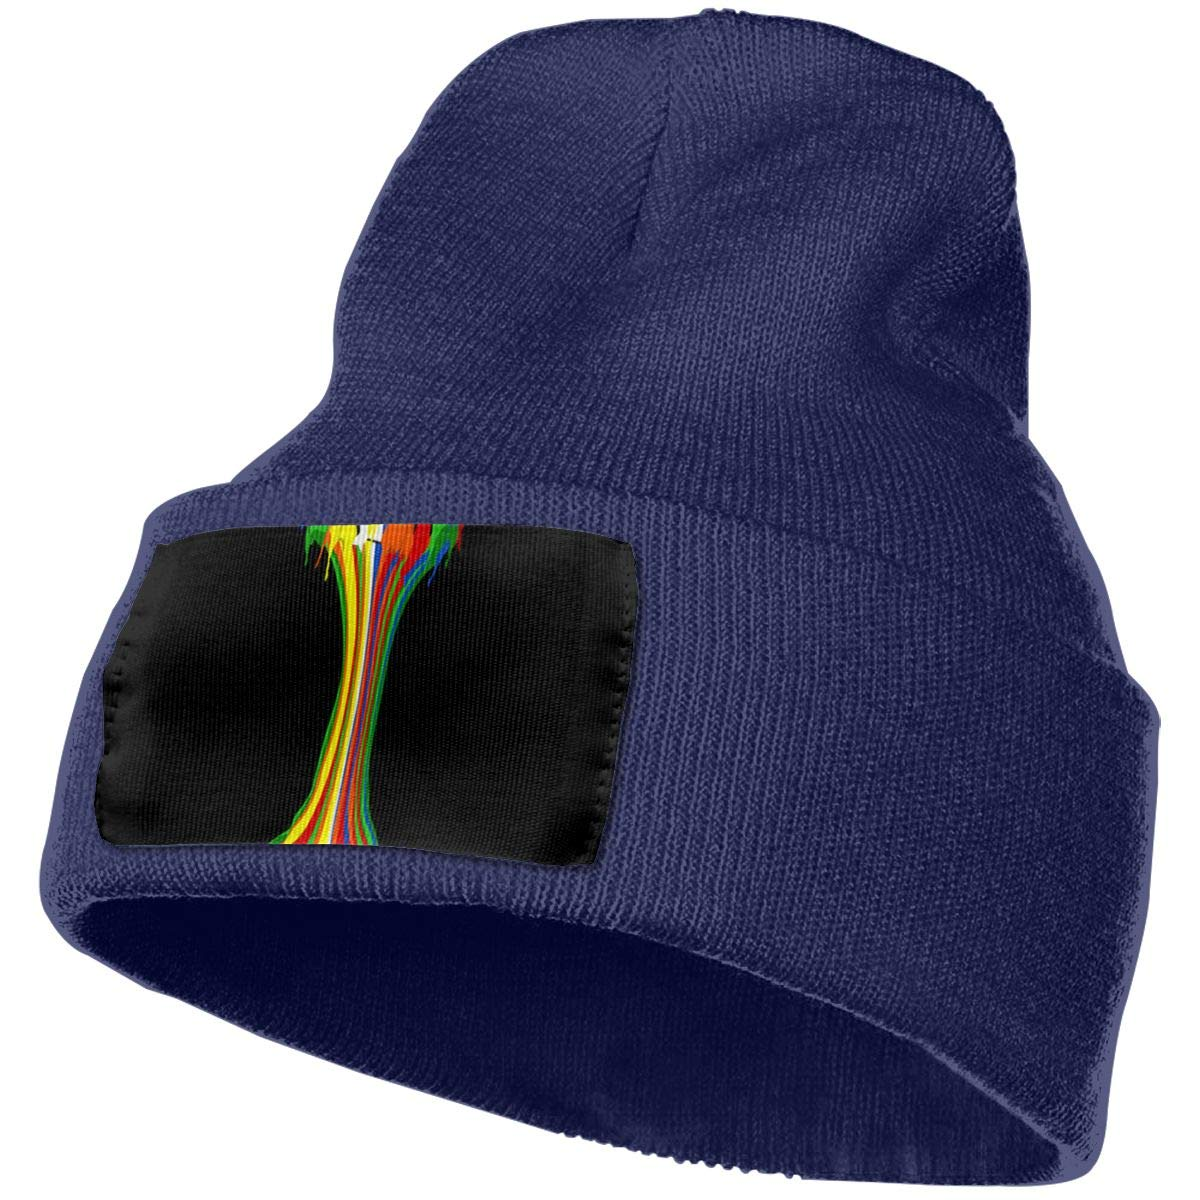 Colorful Drip Rubix Cubes Men /& Women Stretchy Serious Style Beanie Hat Skull Personalized Beanie